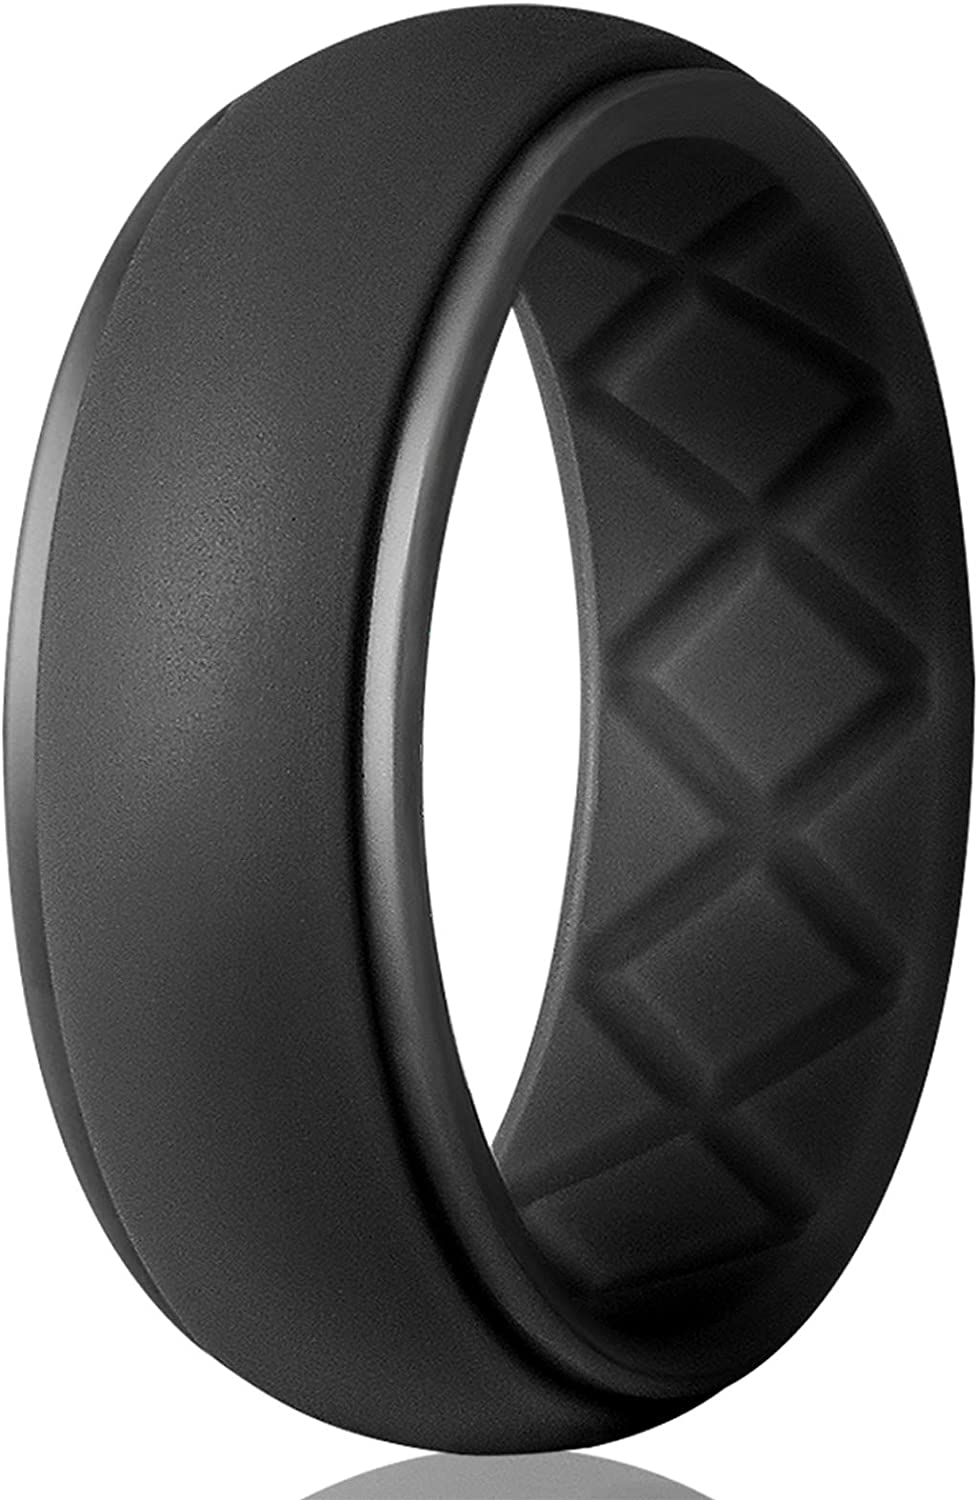 Egnaro wholesale Silicone Super sale Ring for Men 7 1 4 Rings Ed Step